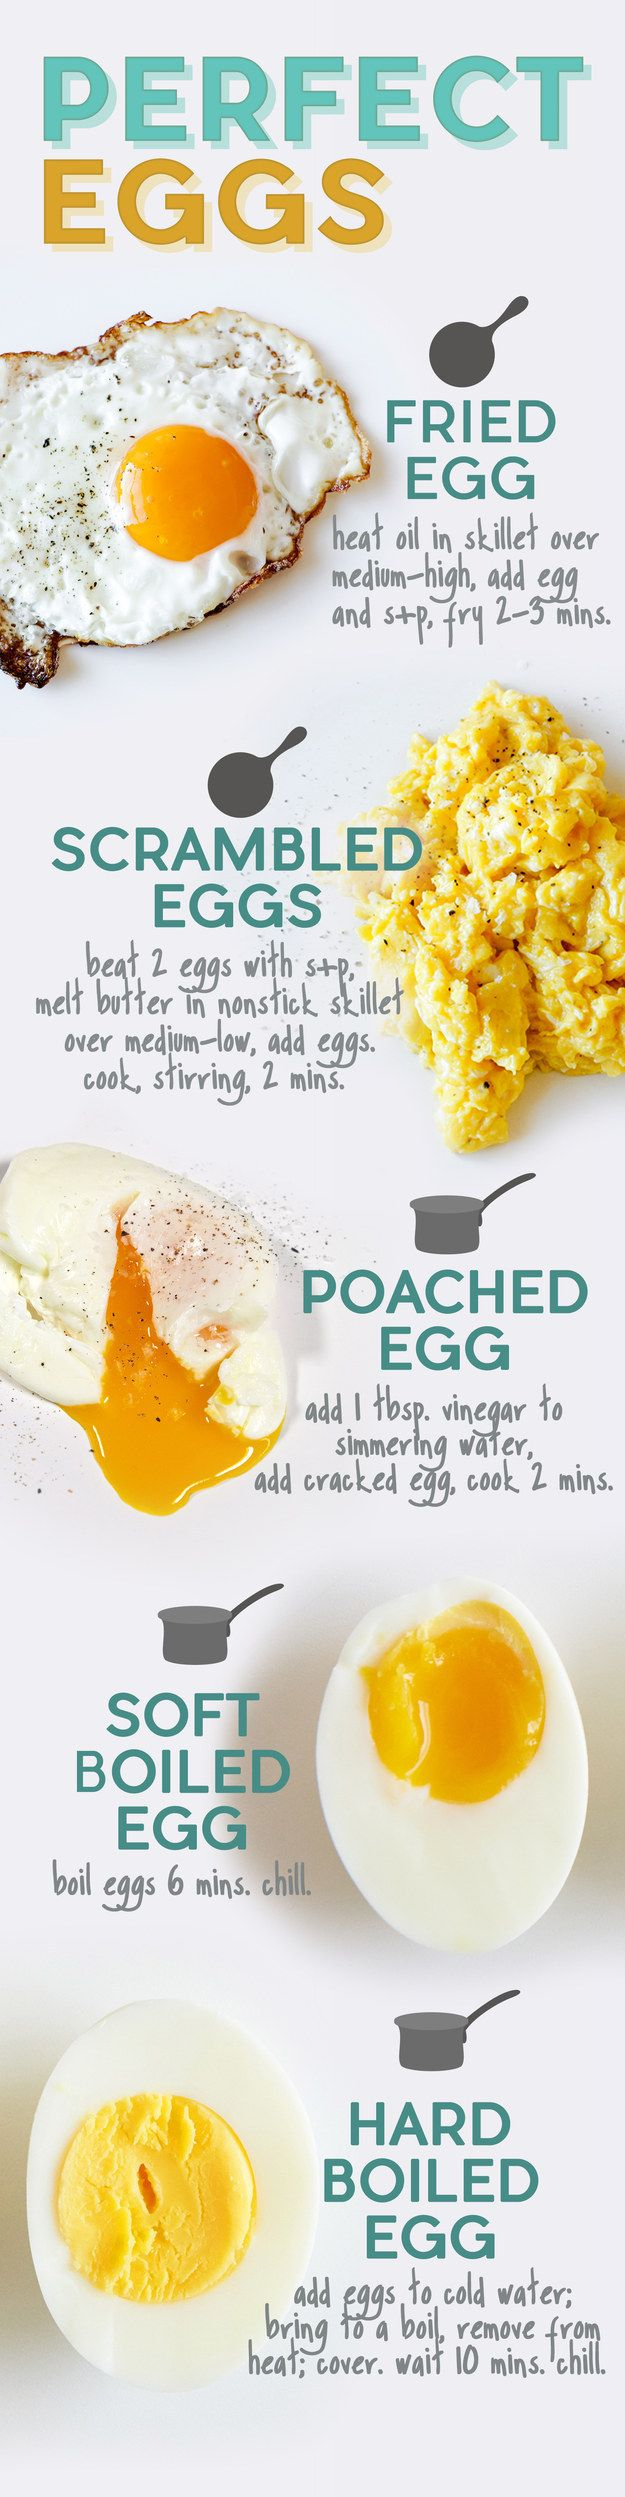 Fried, scrambled, boiled (hard and soft) and of course, POACHED. @buz